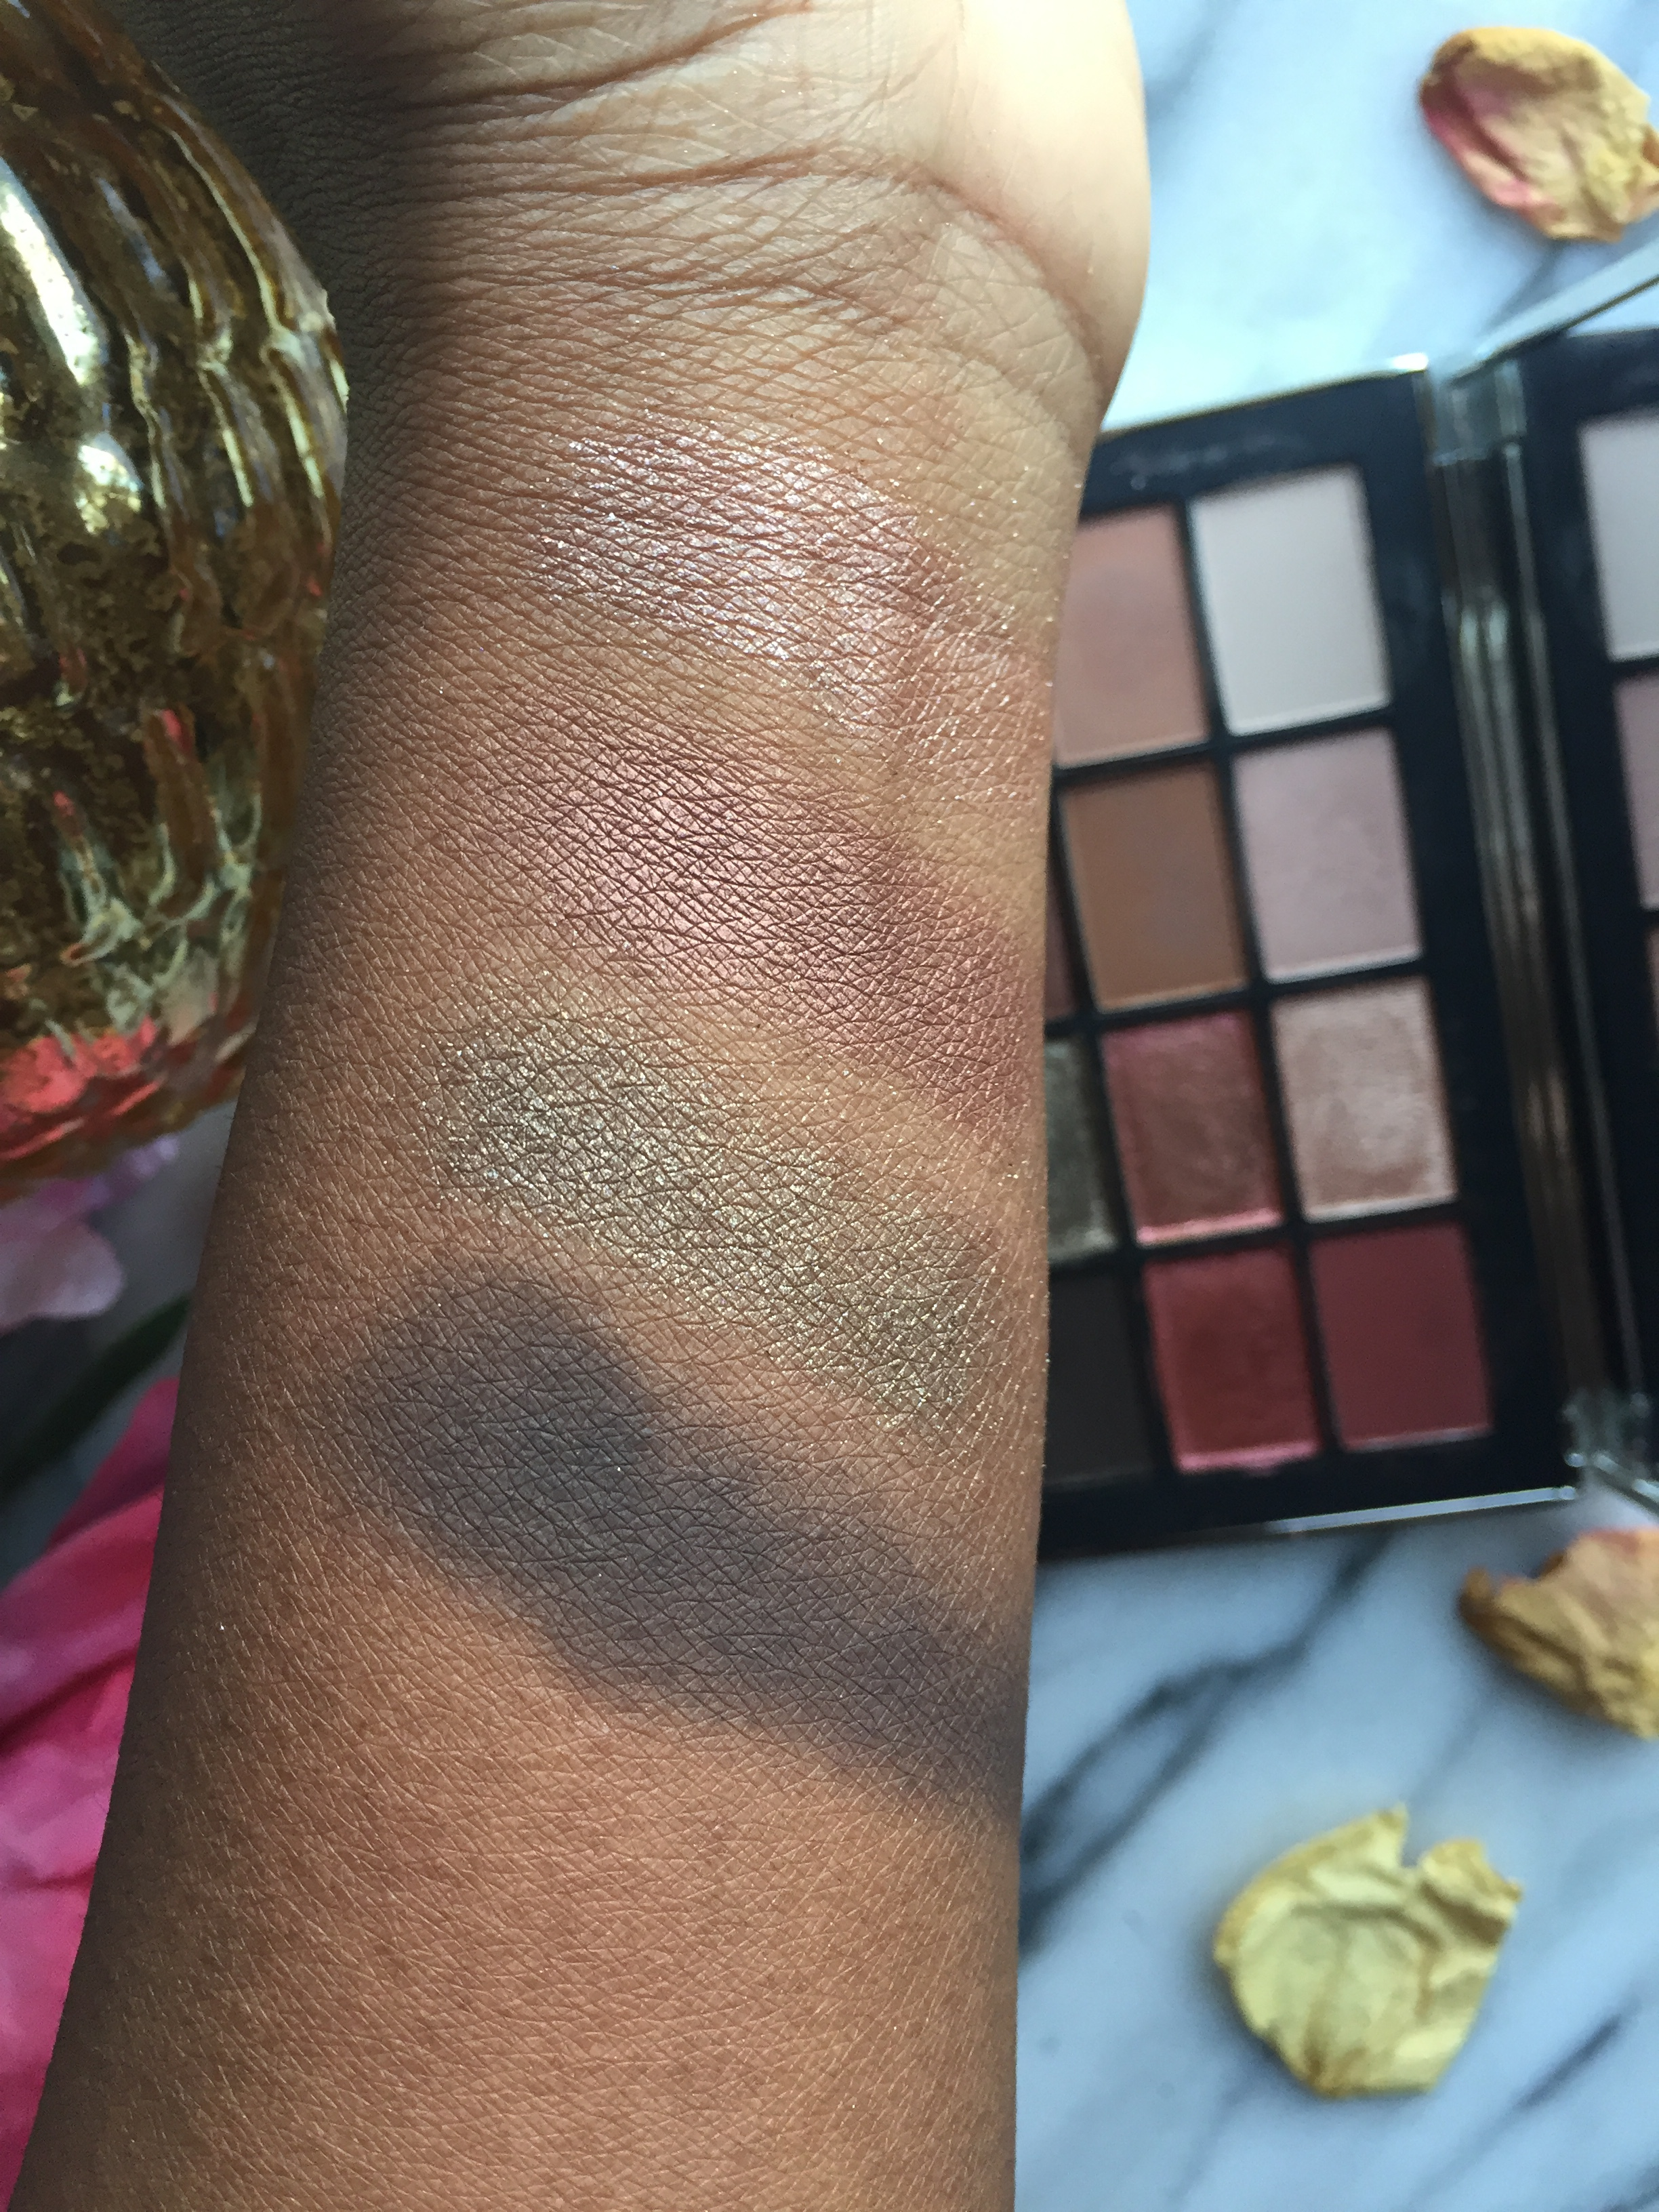 Brush Swatches L to R: Coconut Grove, Fallen Star, LaLa, Shooting Star